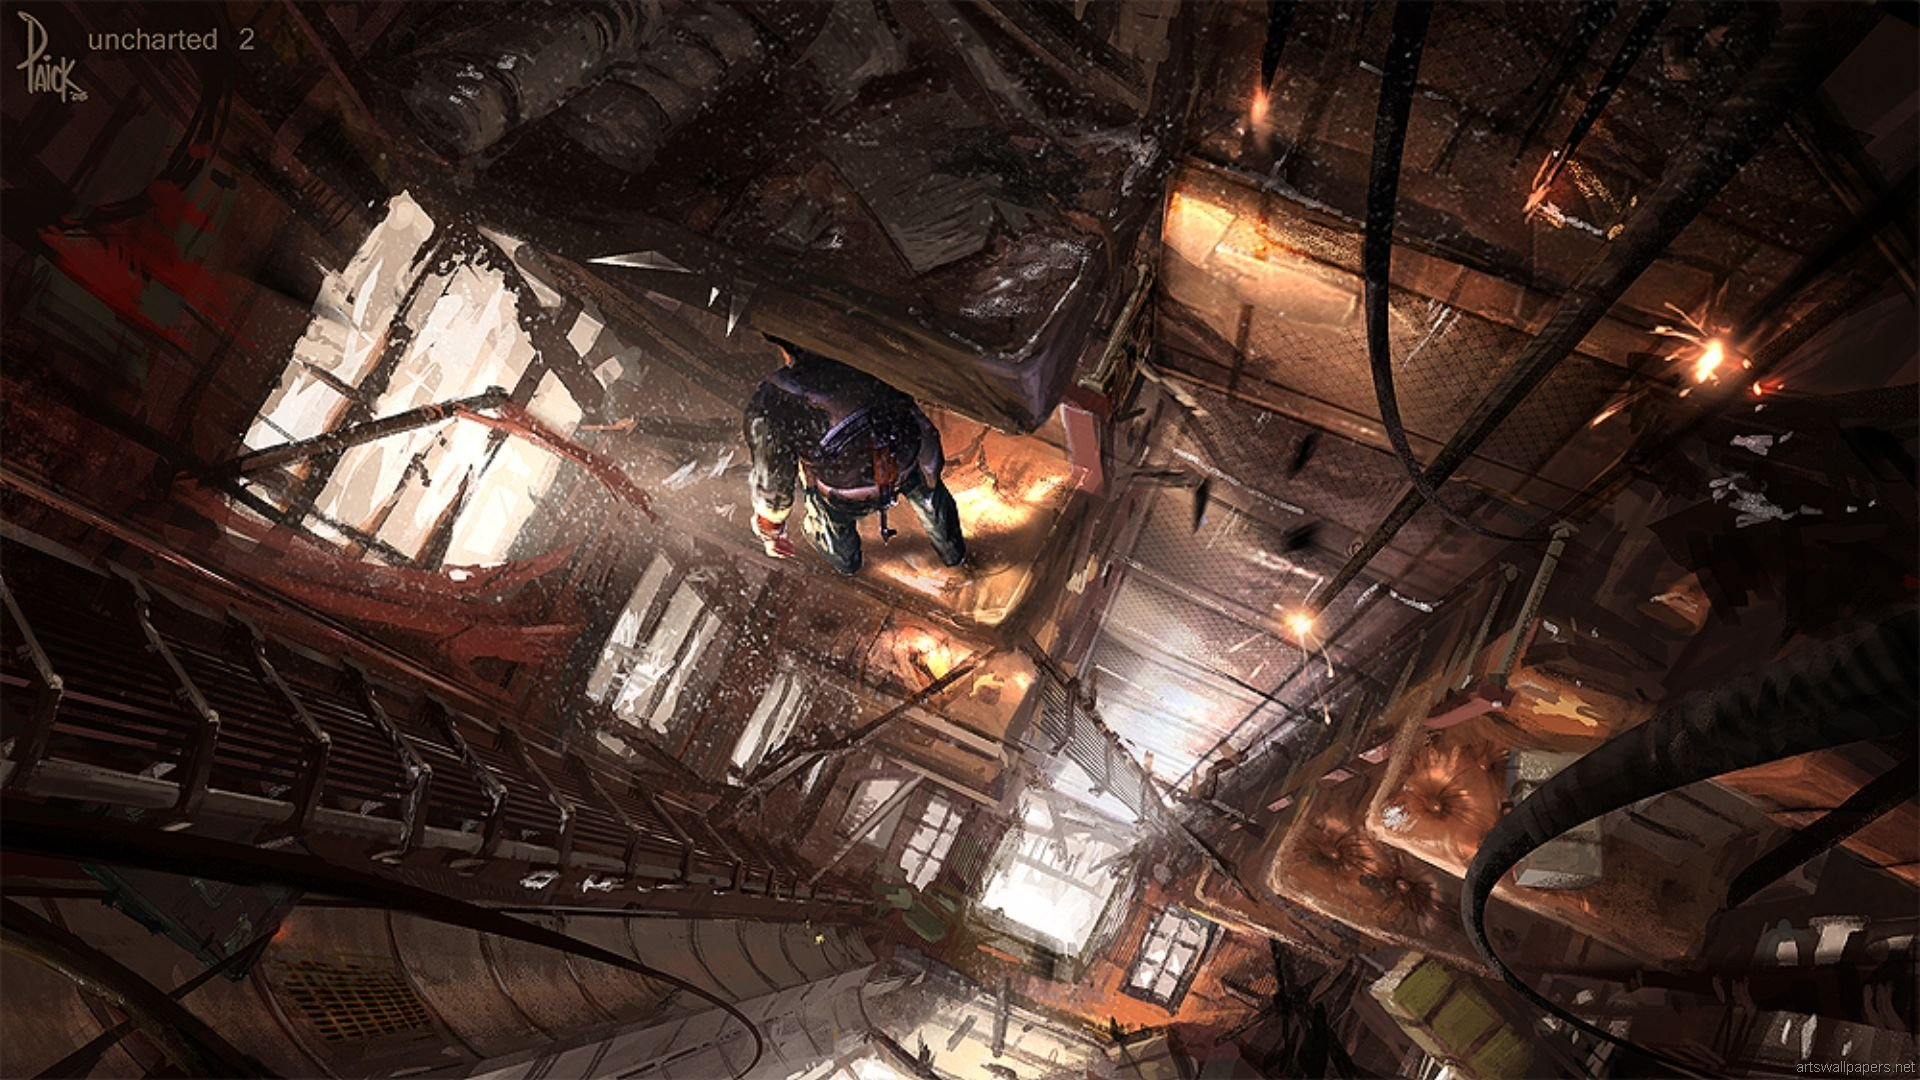 Uncharted 2 Among Thieves Wallpapers Hd For Desktop Backgrounds